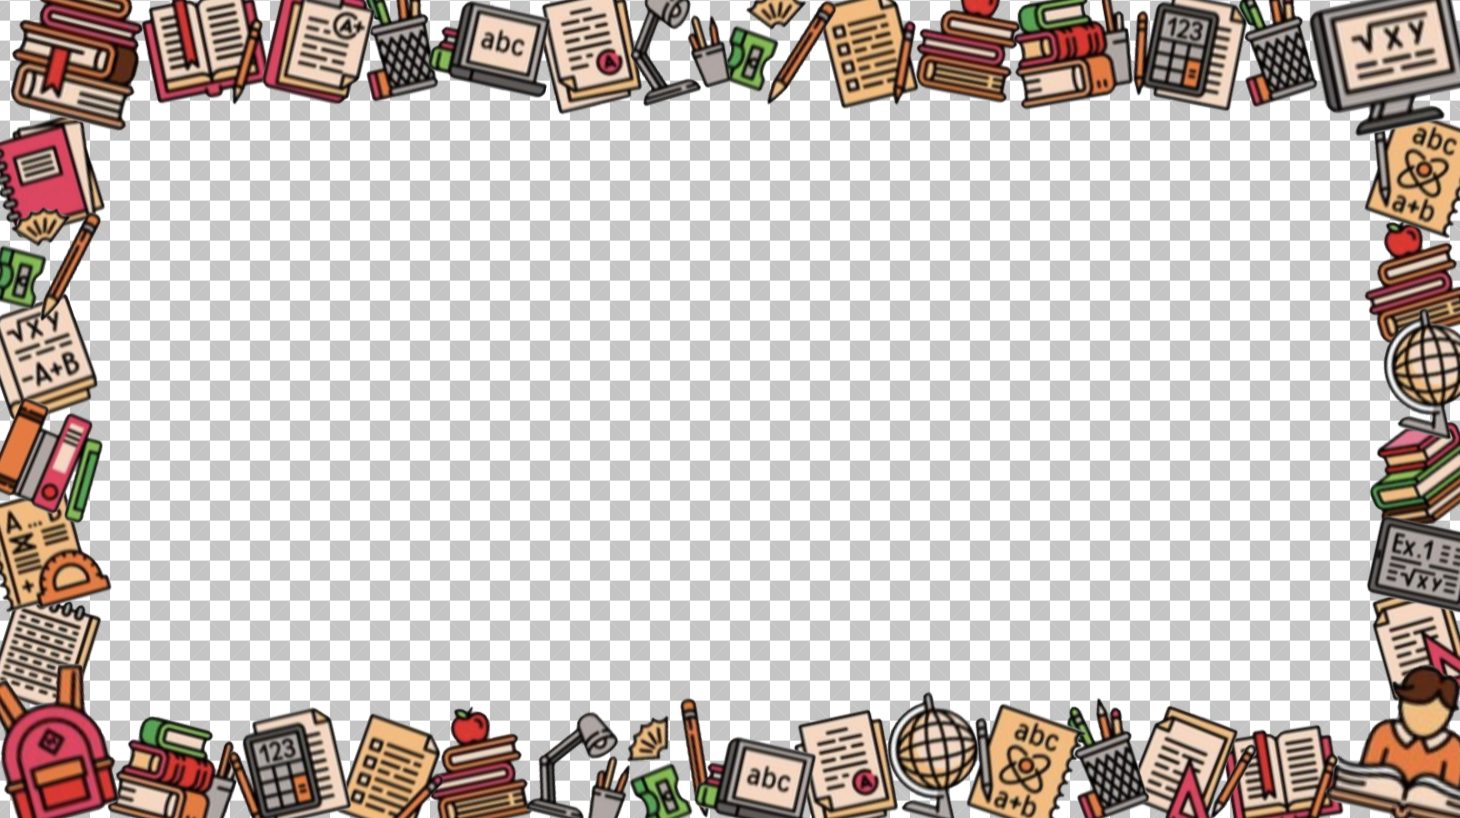 A 16:9 photo frame featuring many school supply icons around the edge.